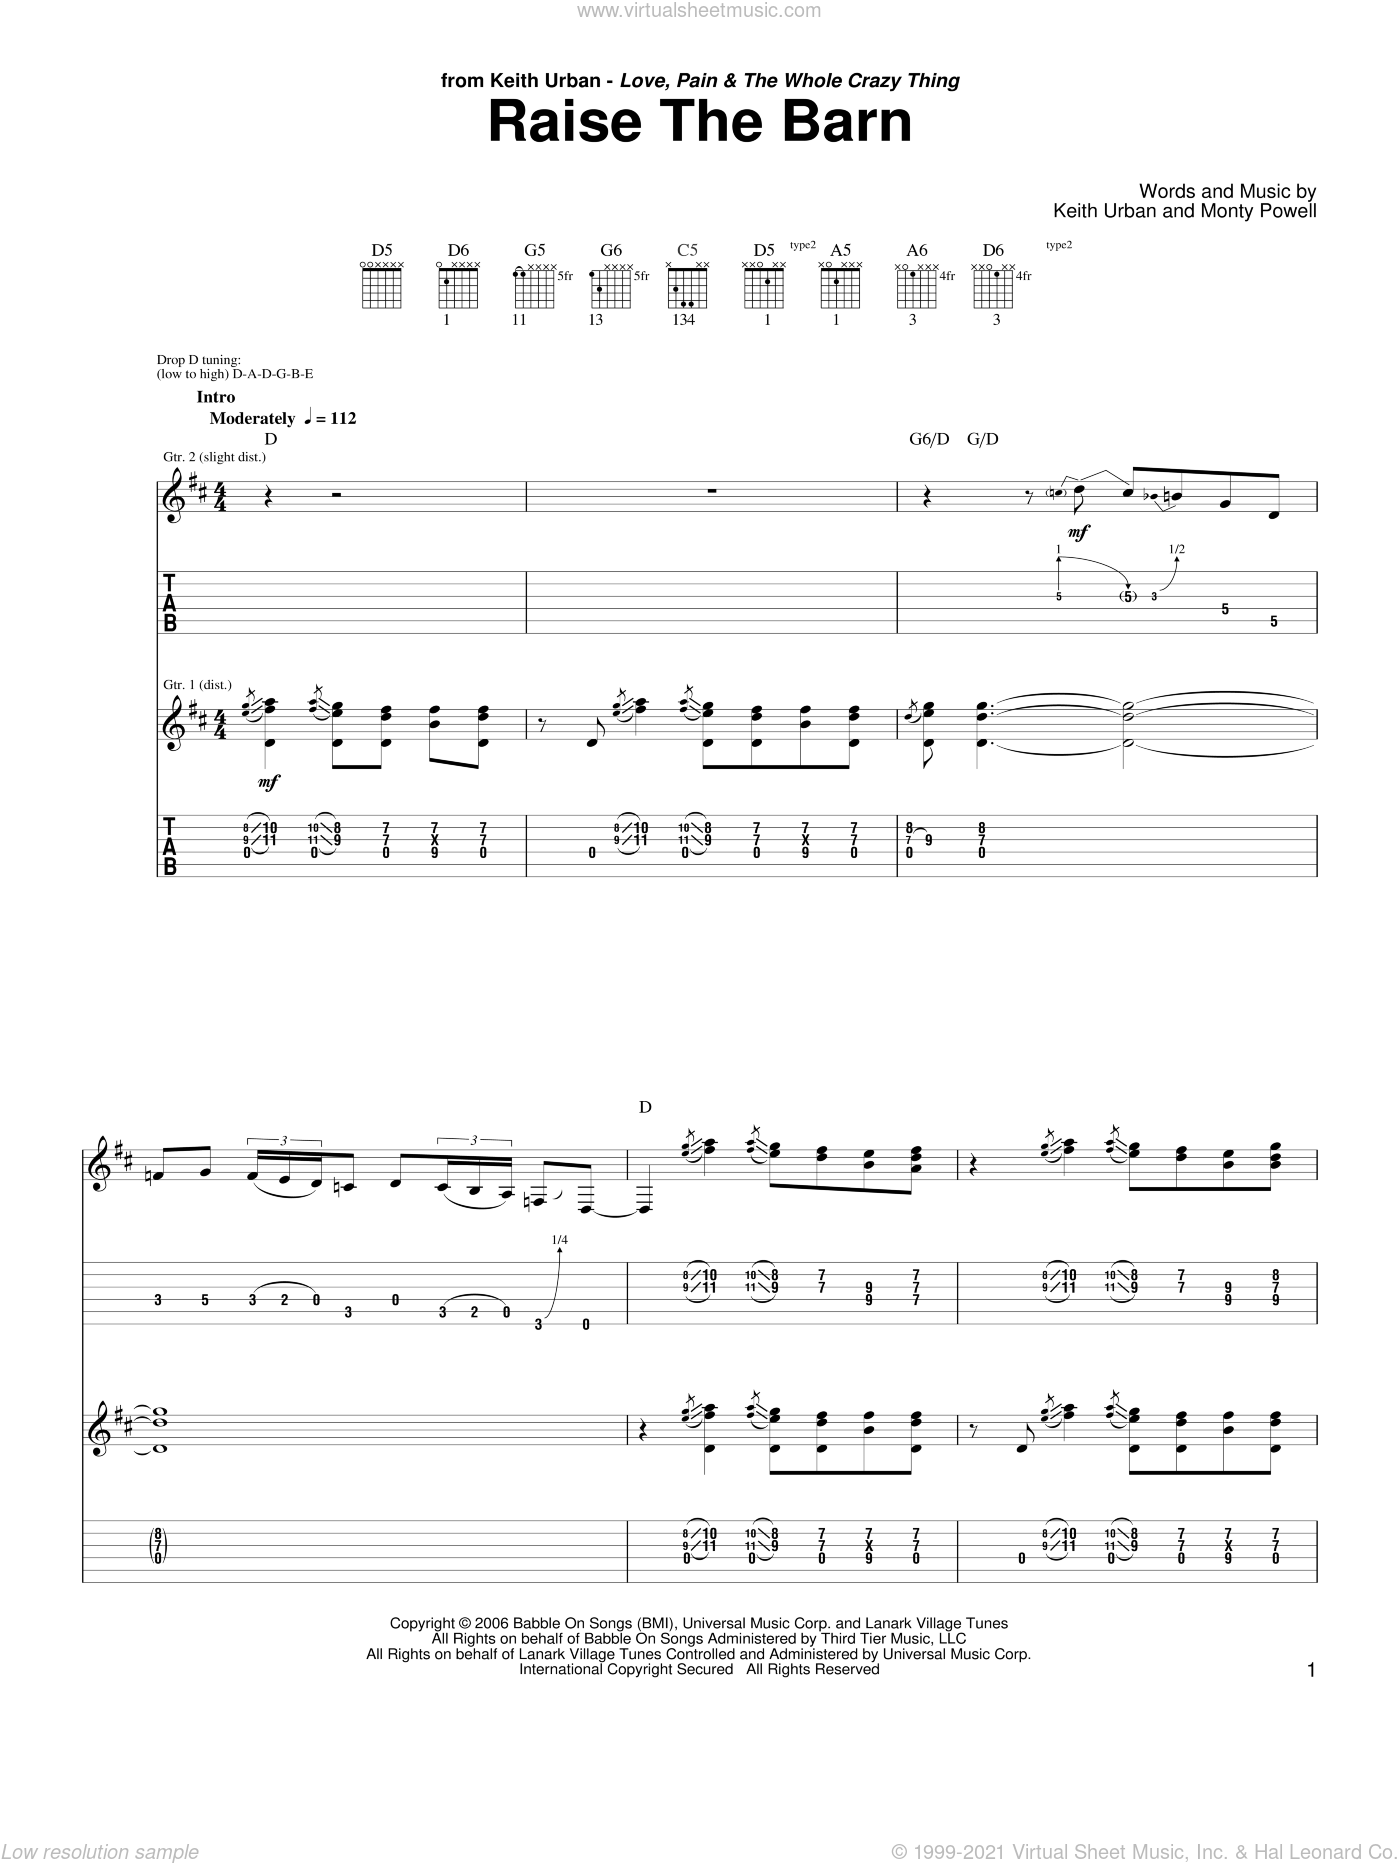 Raise The Barn sheet music for guitar (tablature) by Keith Urban featuring Ronnie Dunn, Ronnie Dunn, Keith Urban and Monty Powell, intermediate guitar (tablature). Score Image Preview.